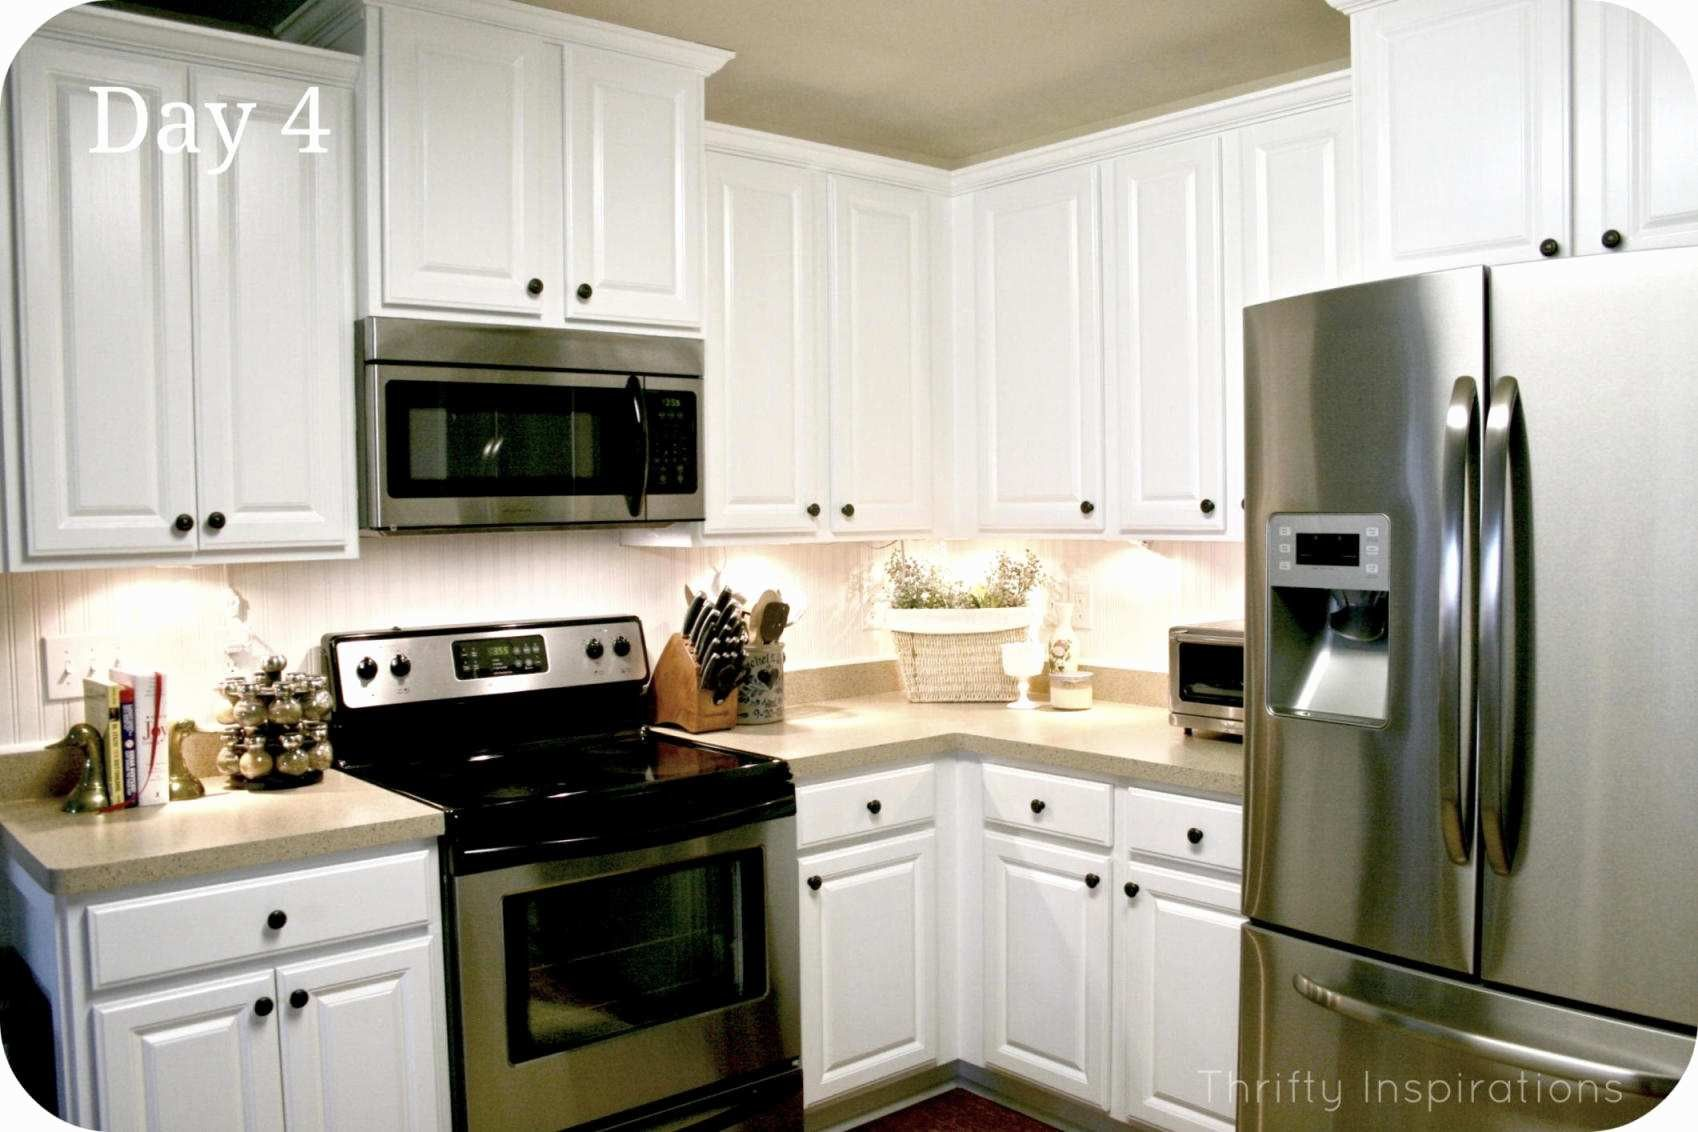 Amazing Black Kitchen Cabinets Lowes | Kitchen cabinets ...